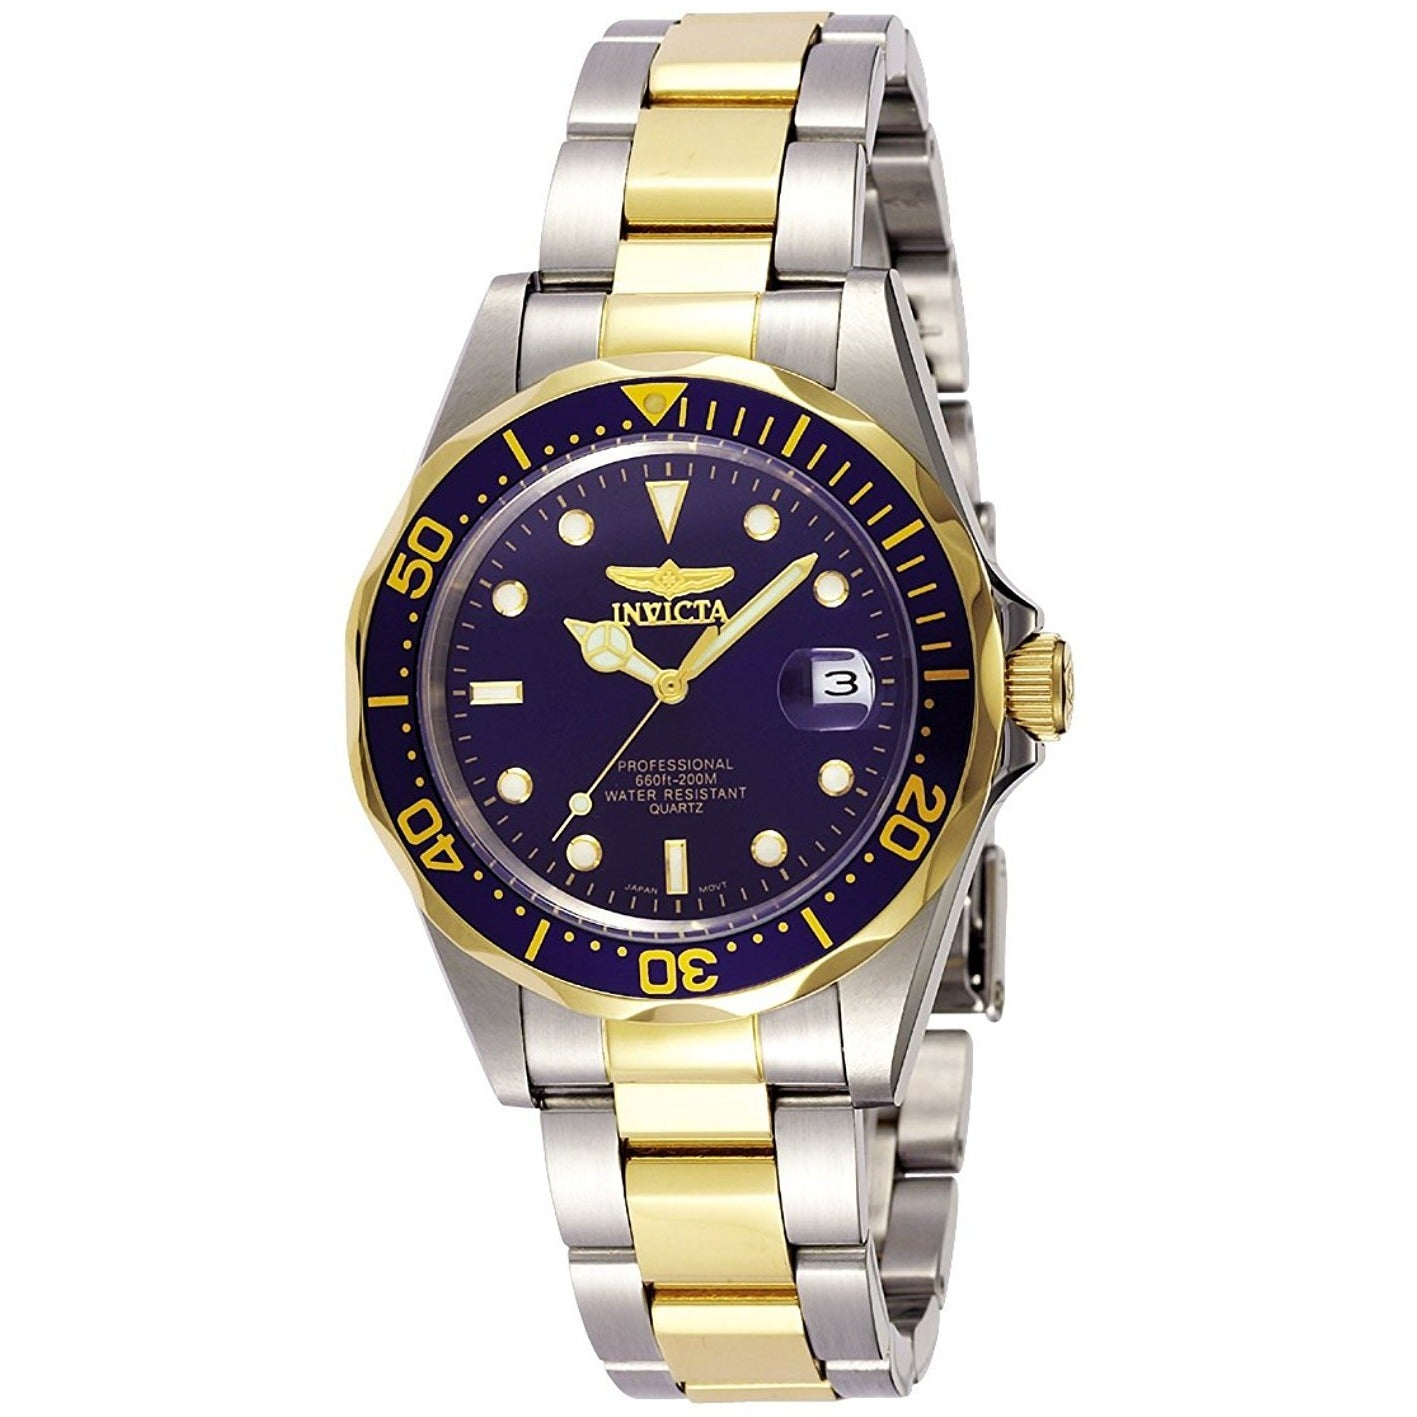 Invicta 8935 Pro Diver Collection For Men Two Tone Stainless Steel Analog Watch